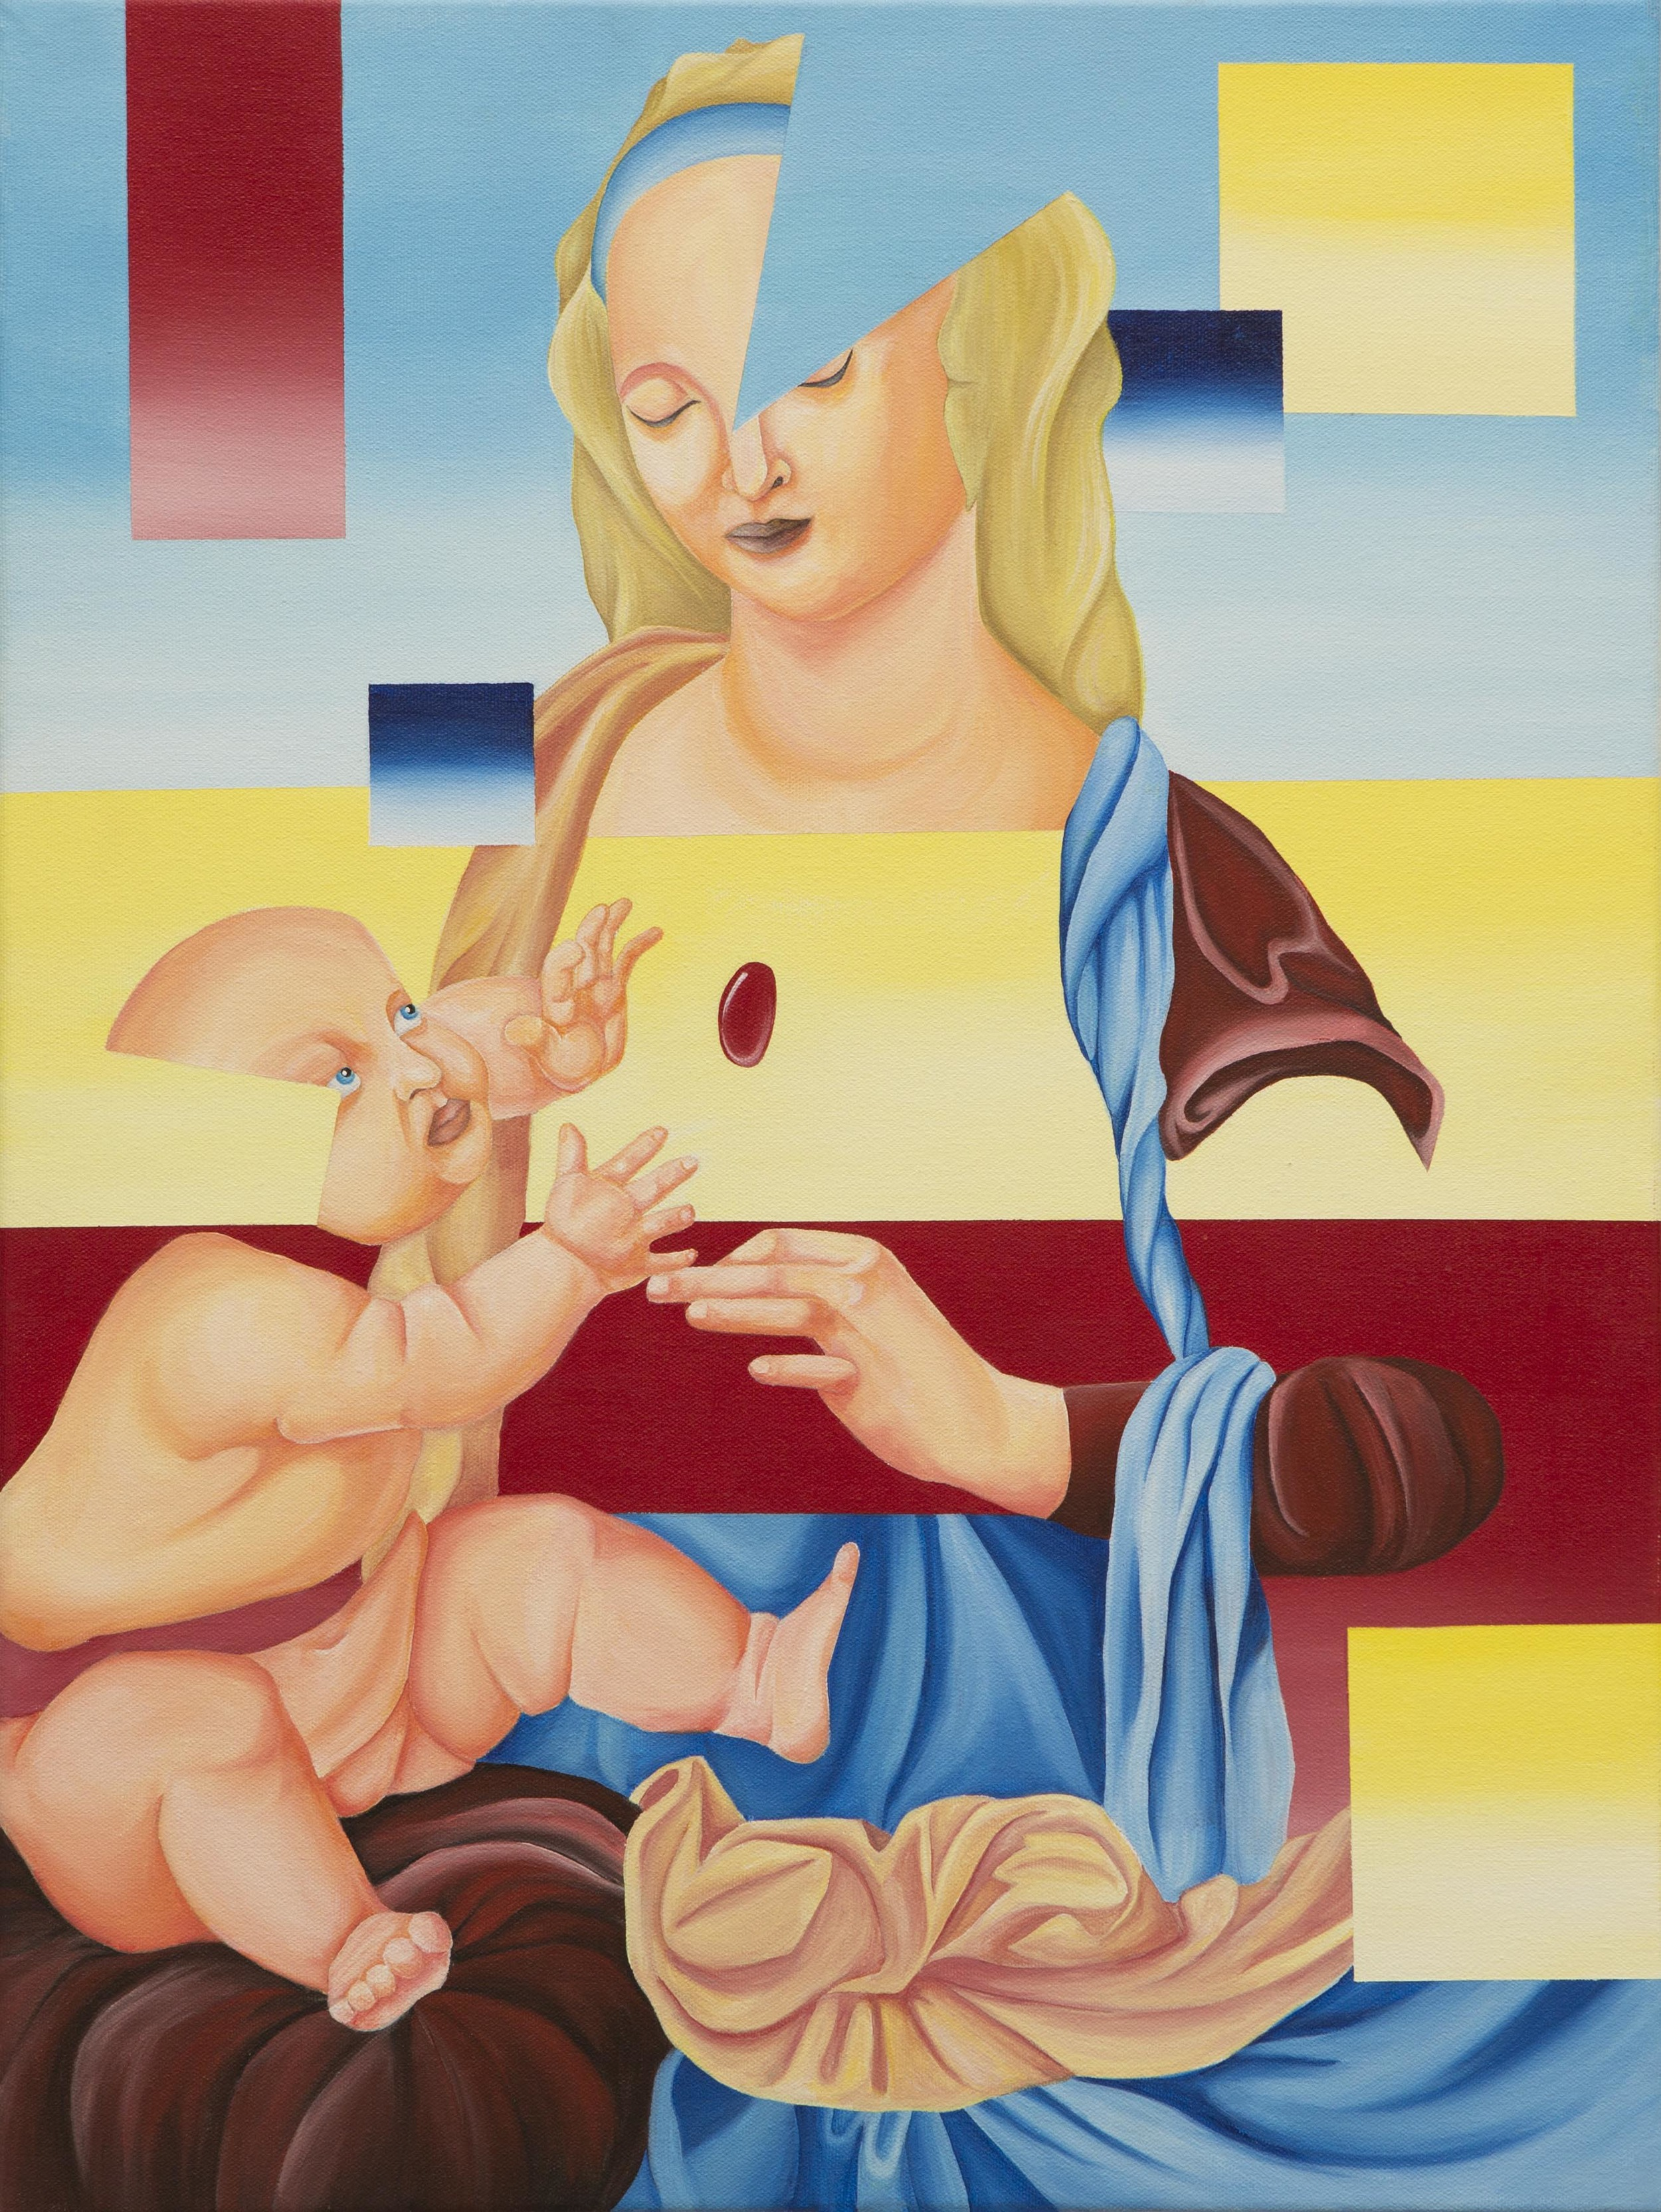 Surreal Madonna and Child